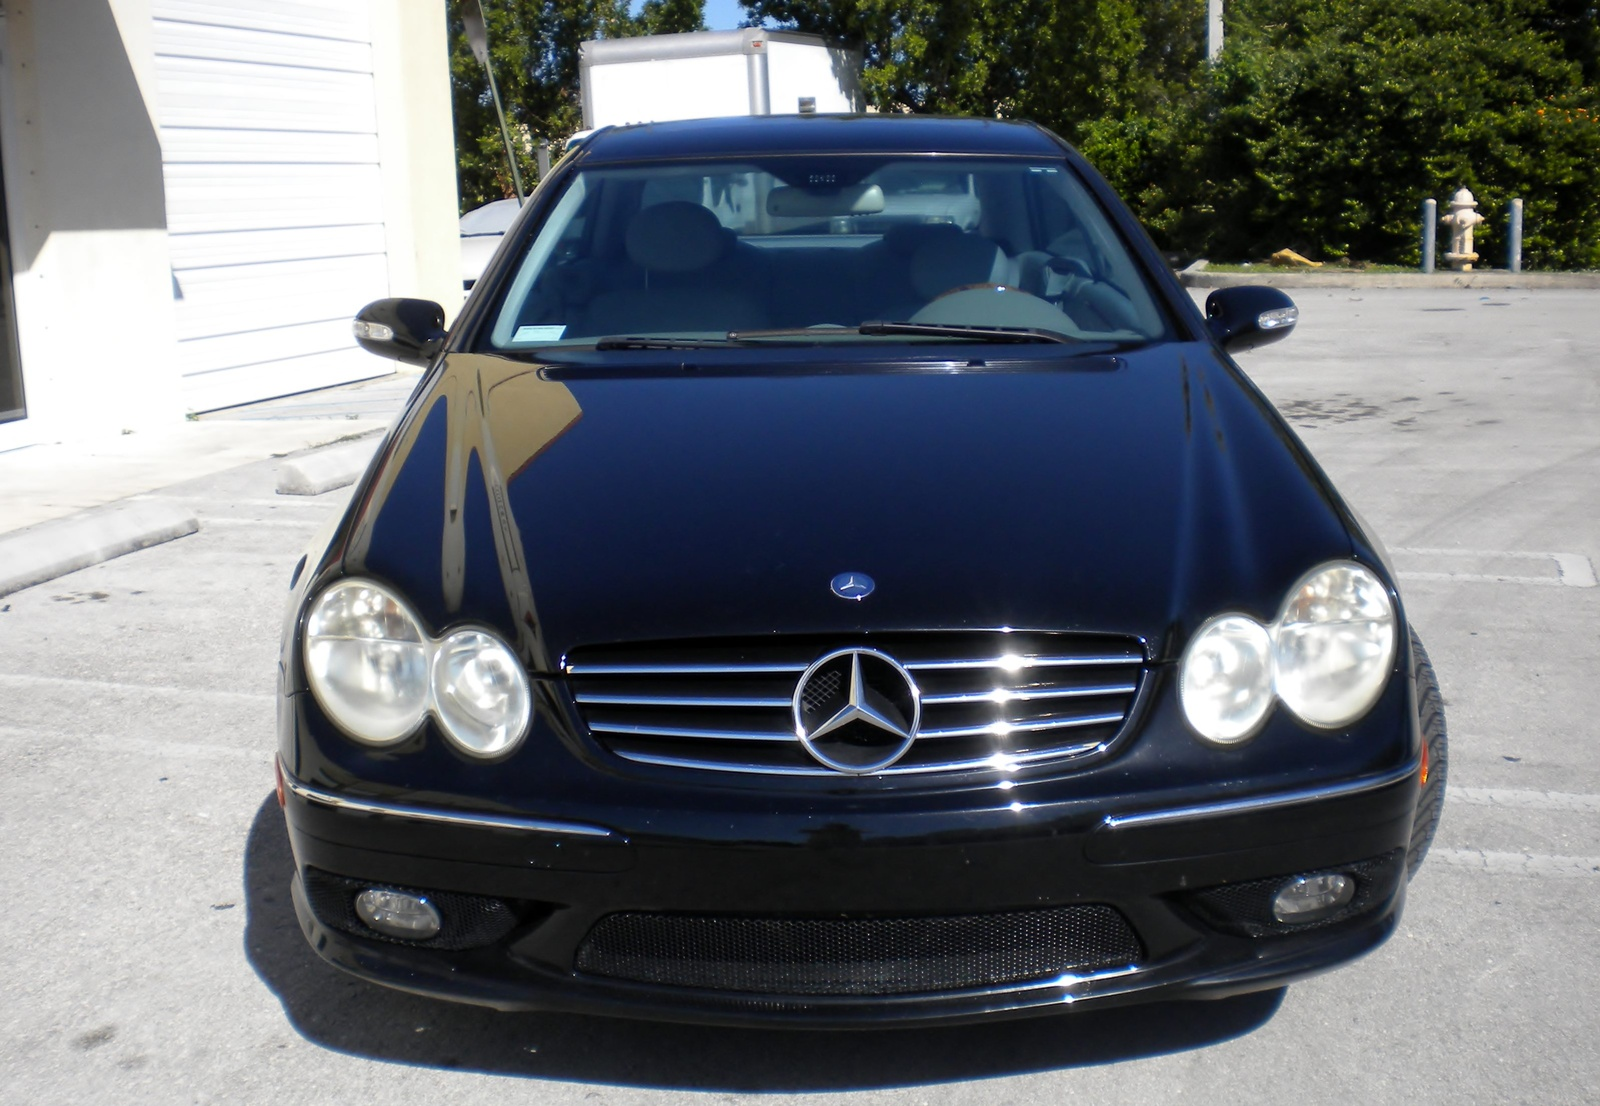 Picture of 2004 mercedes benz clk class 2 dr clk500 coupe for 2004 mercedes benz clk 500